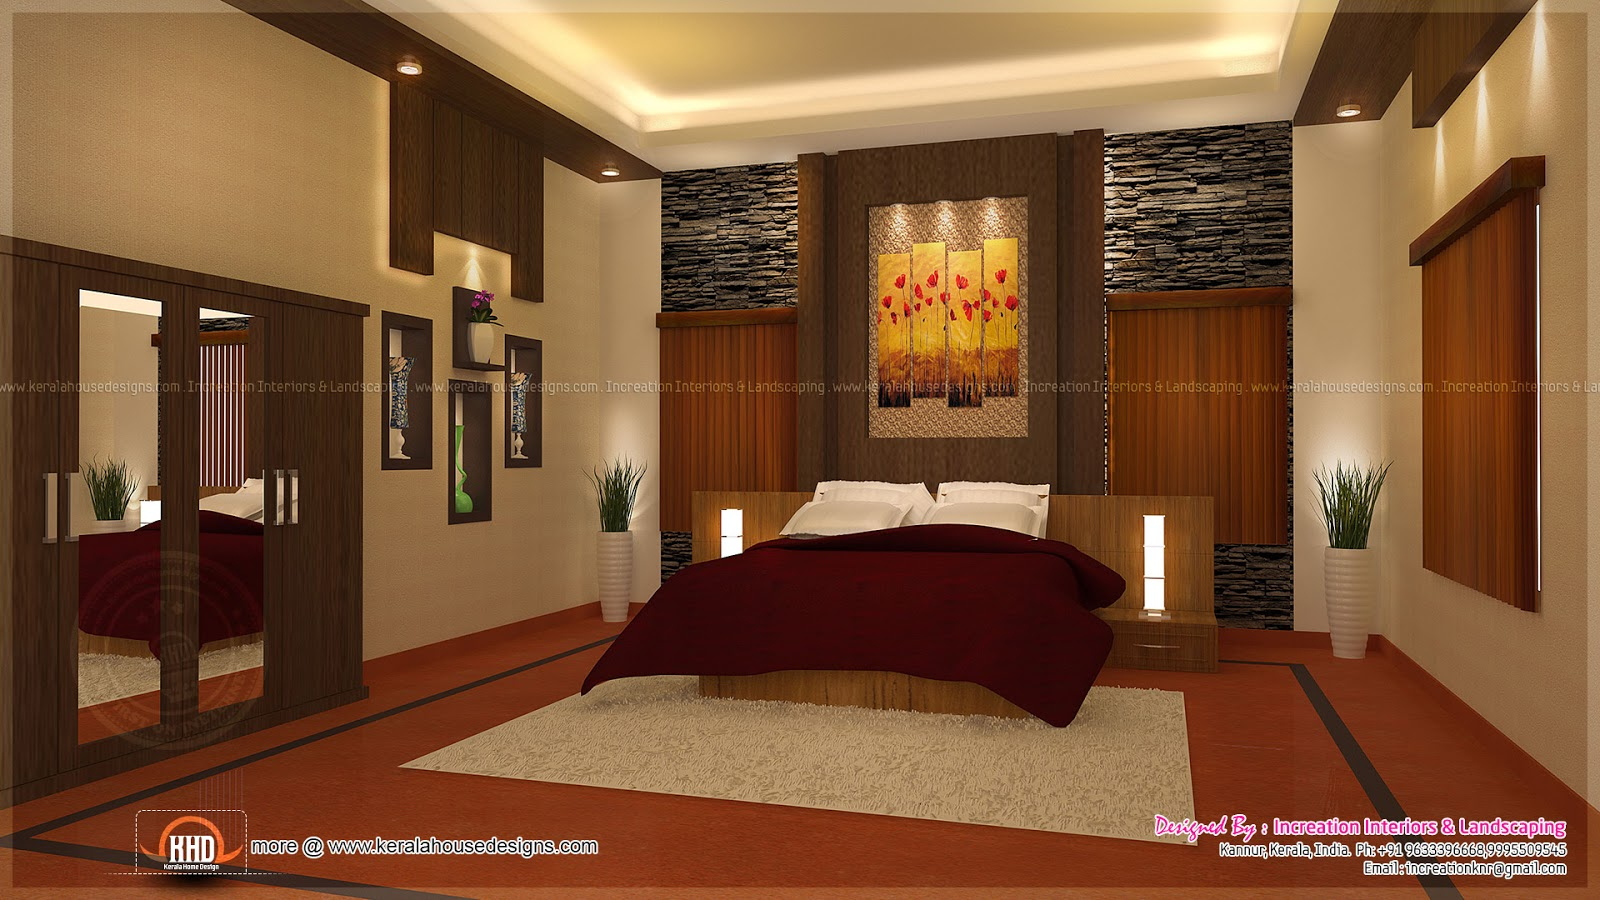 Master bedroom interior for House design photos interior design